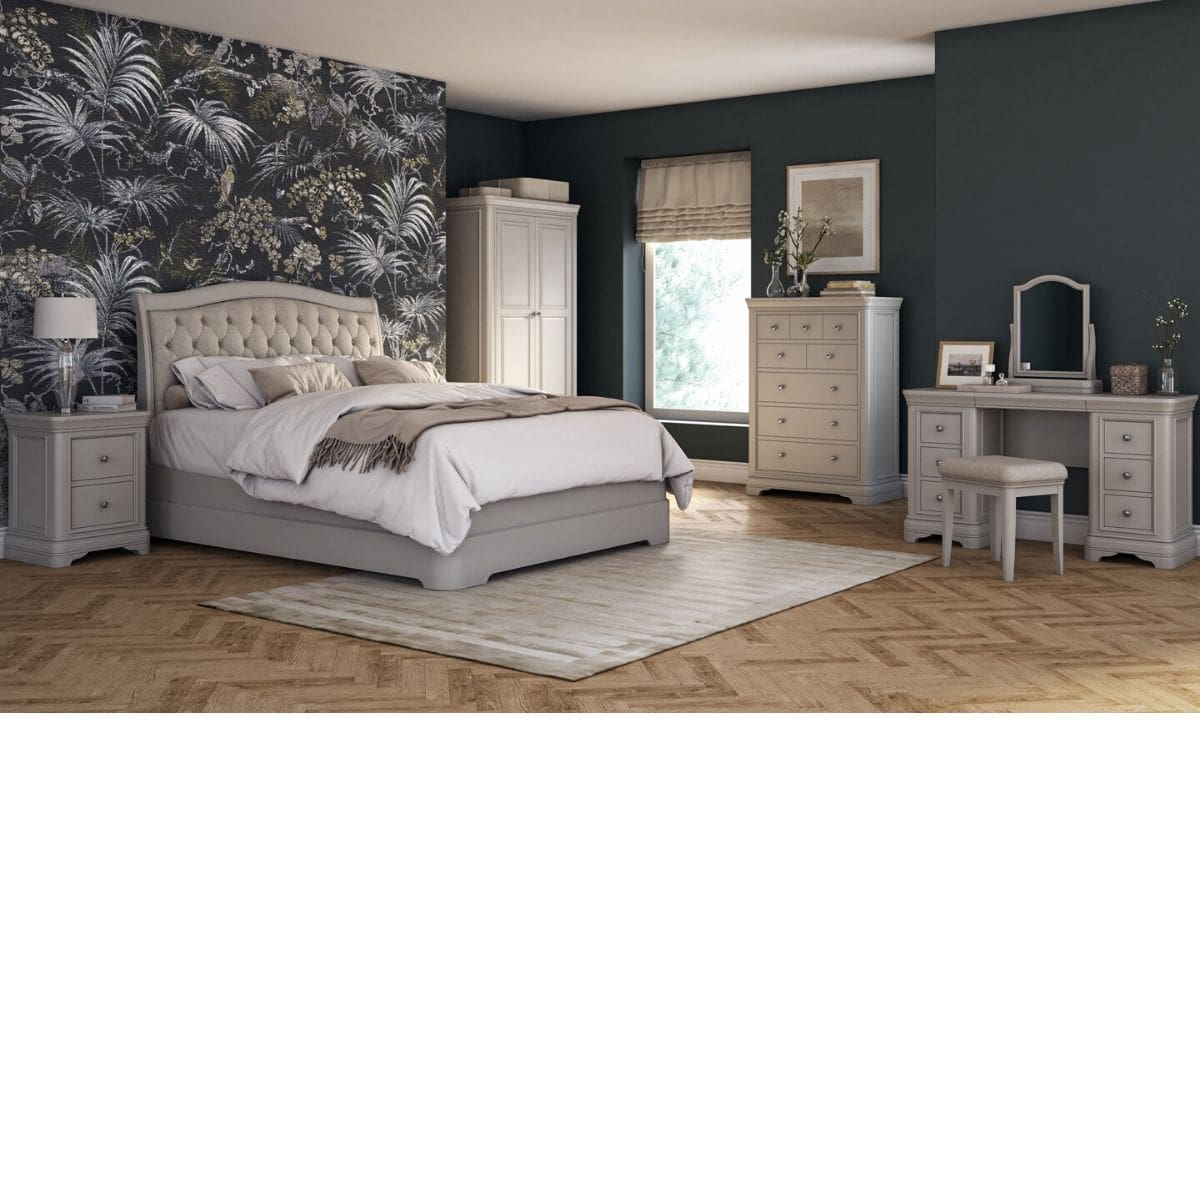 Mika 5 Drawer Tall Chest of Drawers